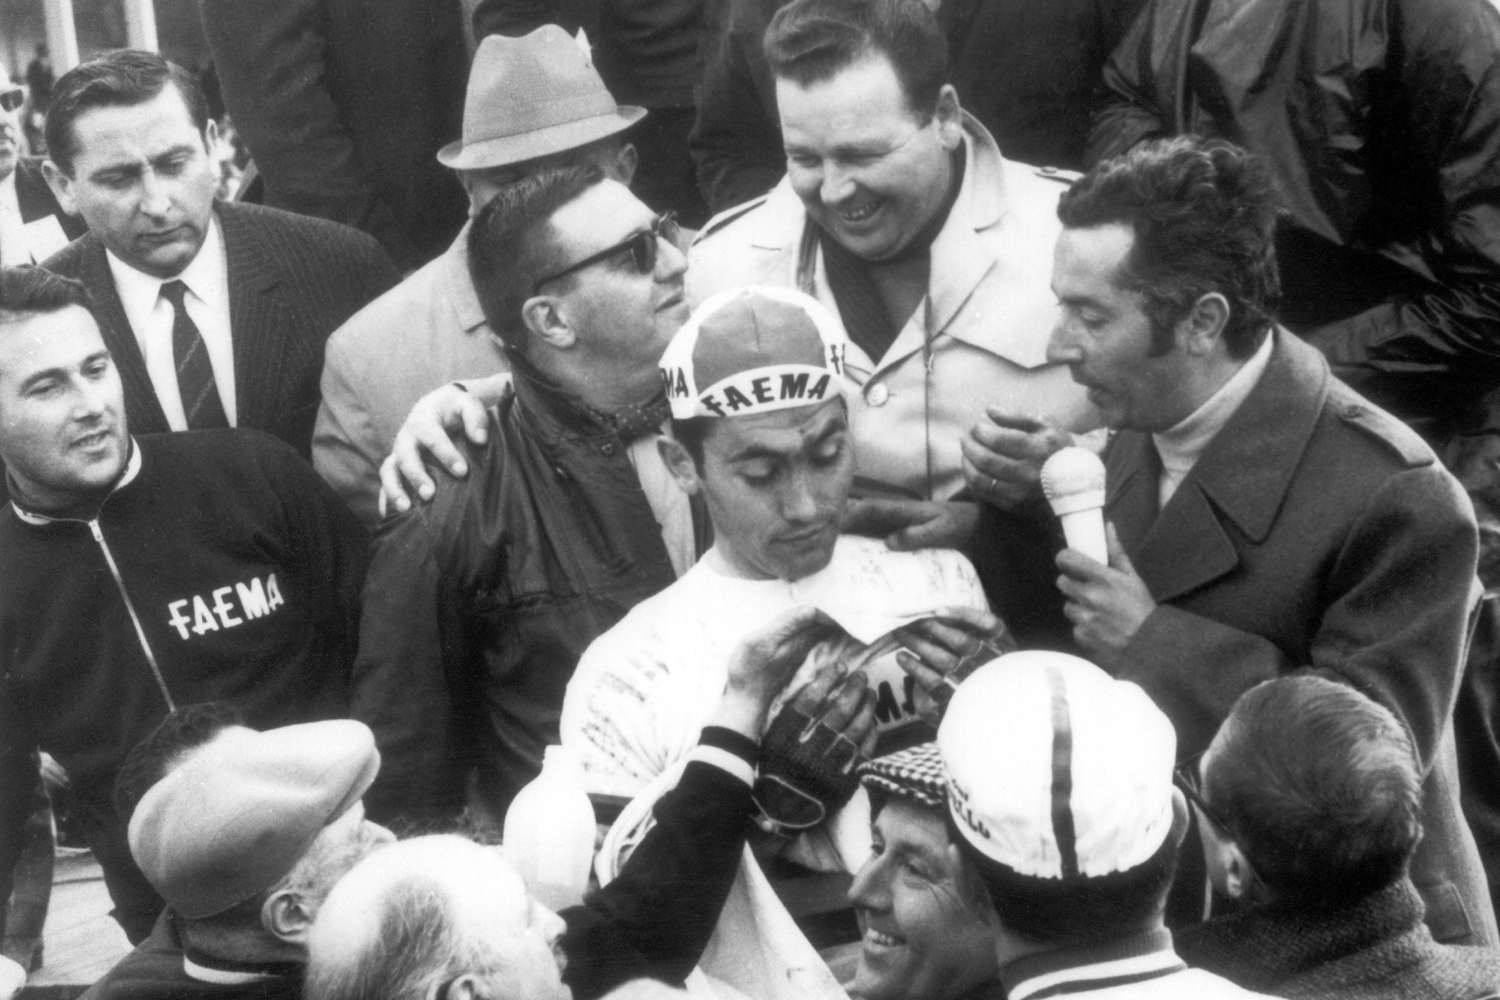 "Eddie (the Cannibal) Mercxk, a son of Belgium and probably the greatest rider, ever (11 grand tours, 19 ""monuments"" among scores of other wins), outsprinted Keraan Van Springel to win Paris-Roubaix in '68."